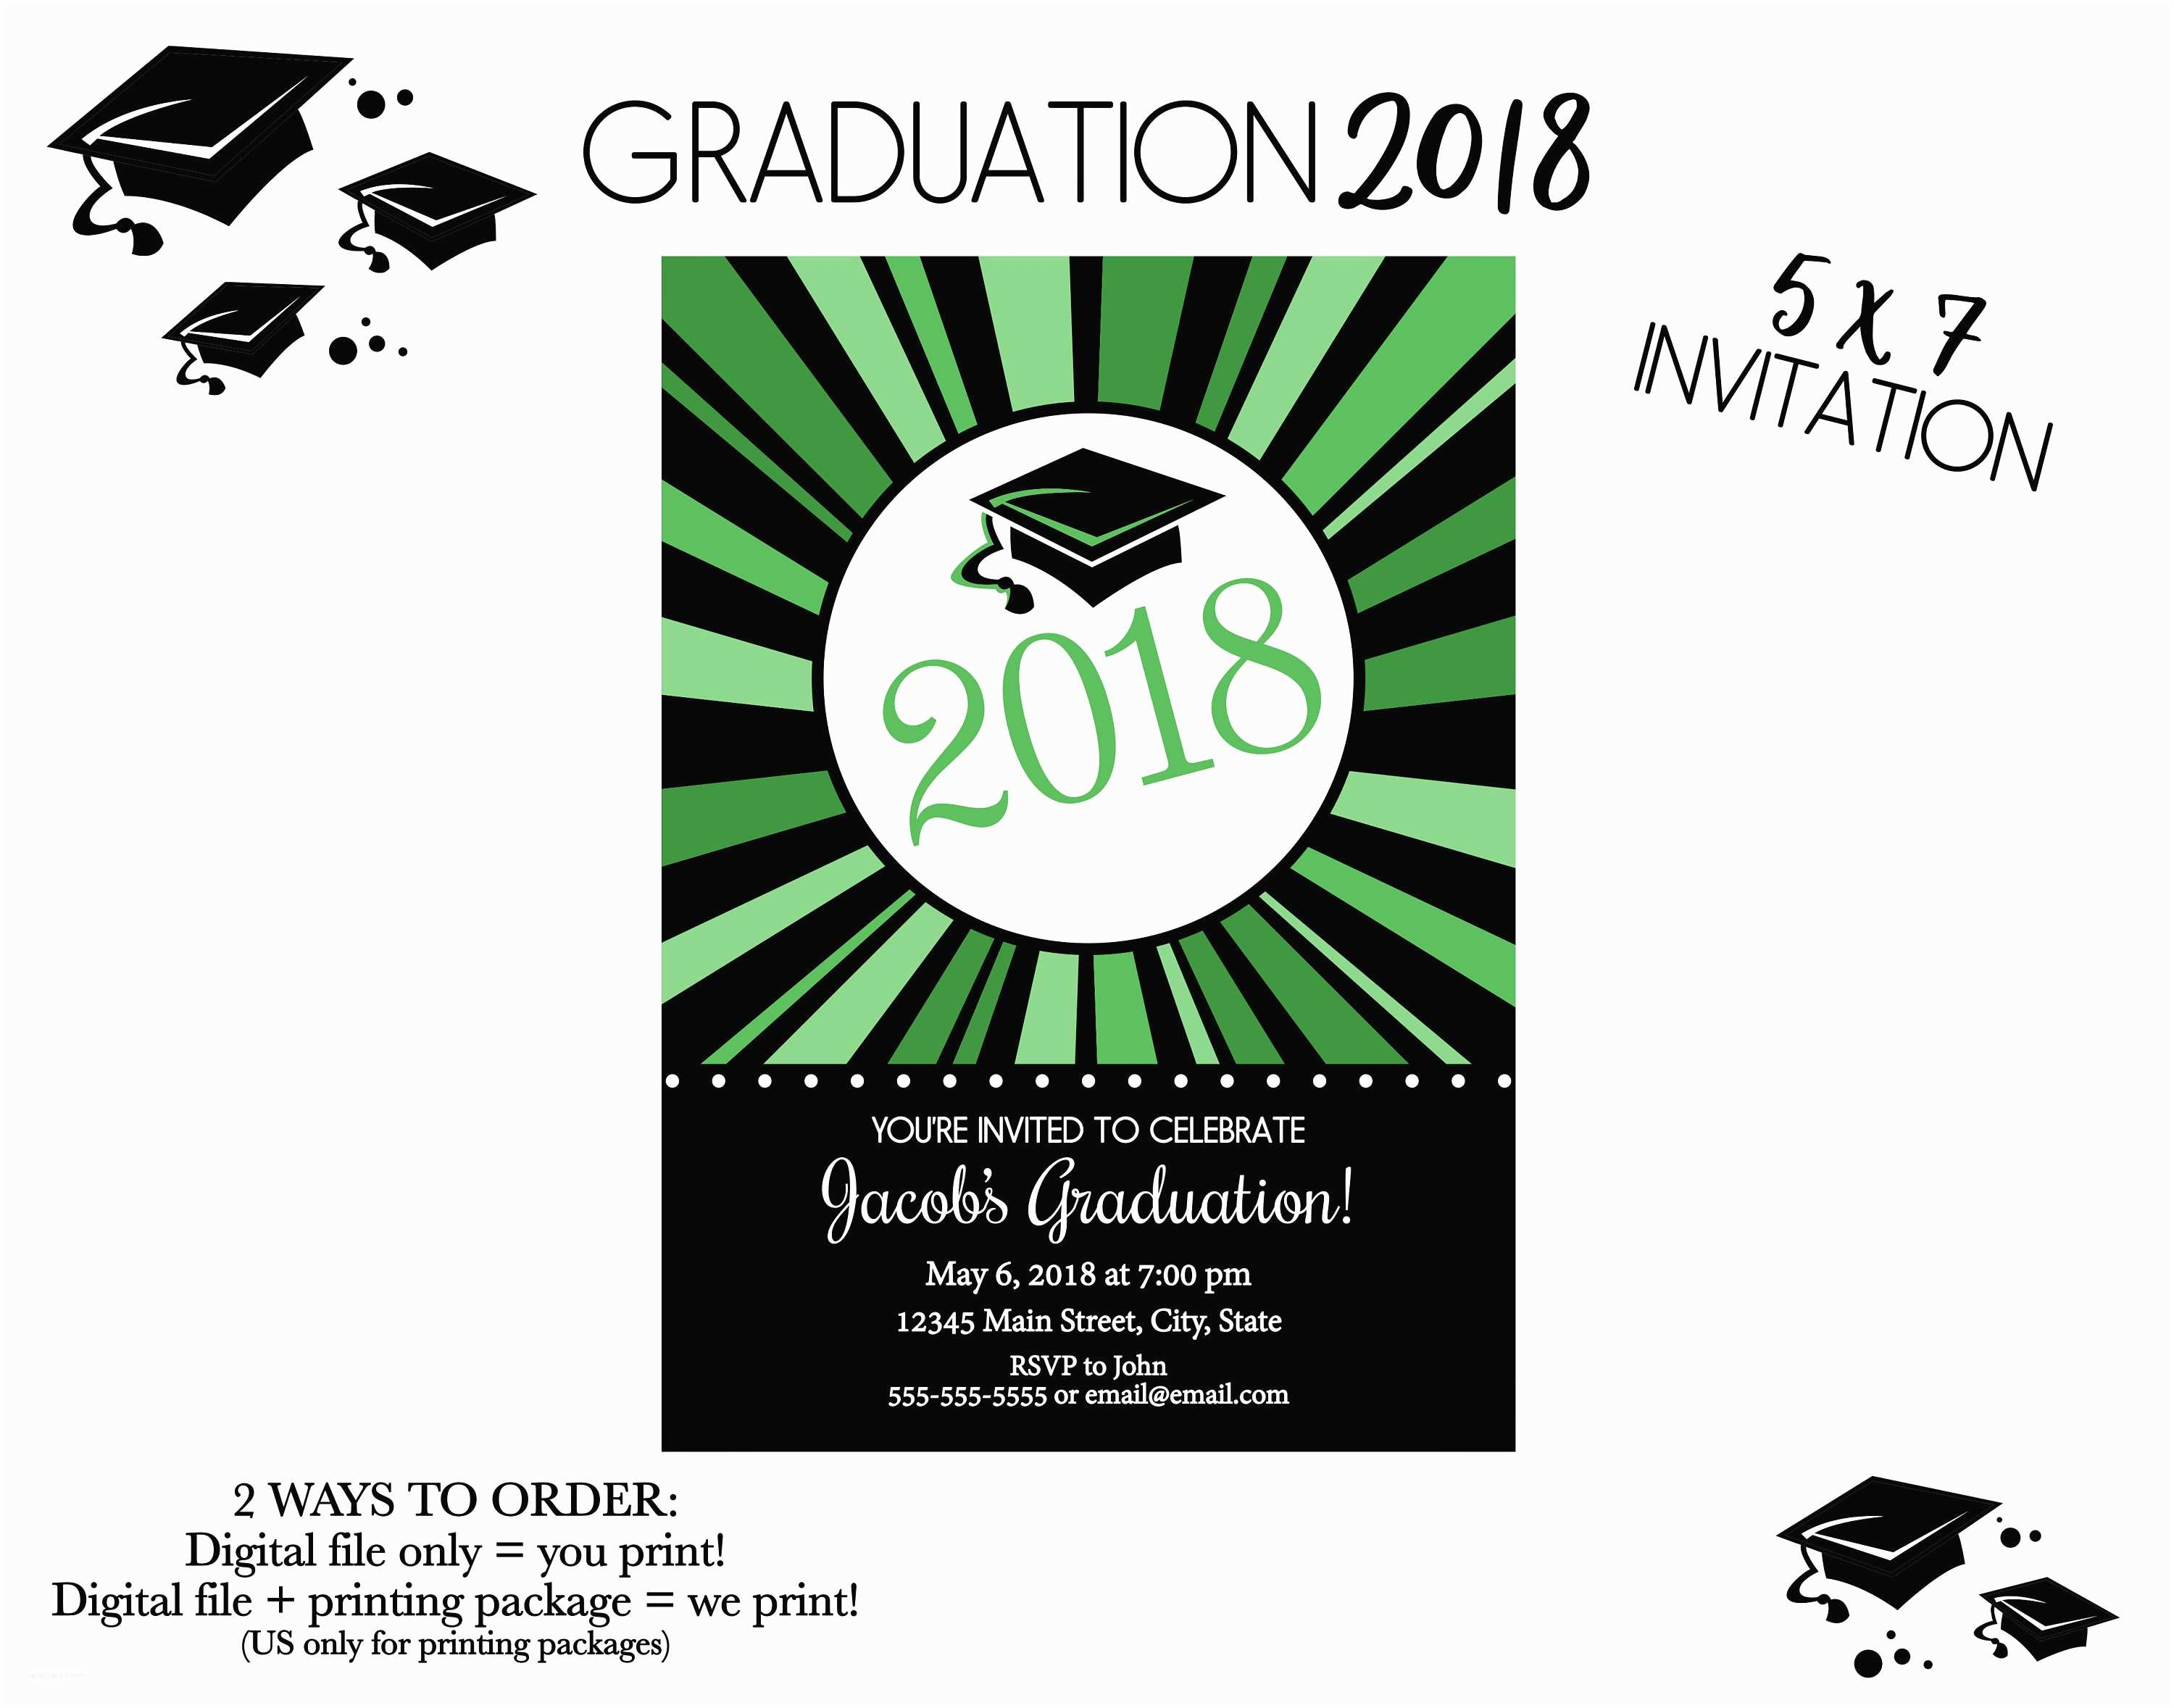 Graduation Party Invitations 2018 Graduation Party Invitation Class Of 2018 High School